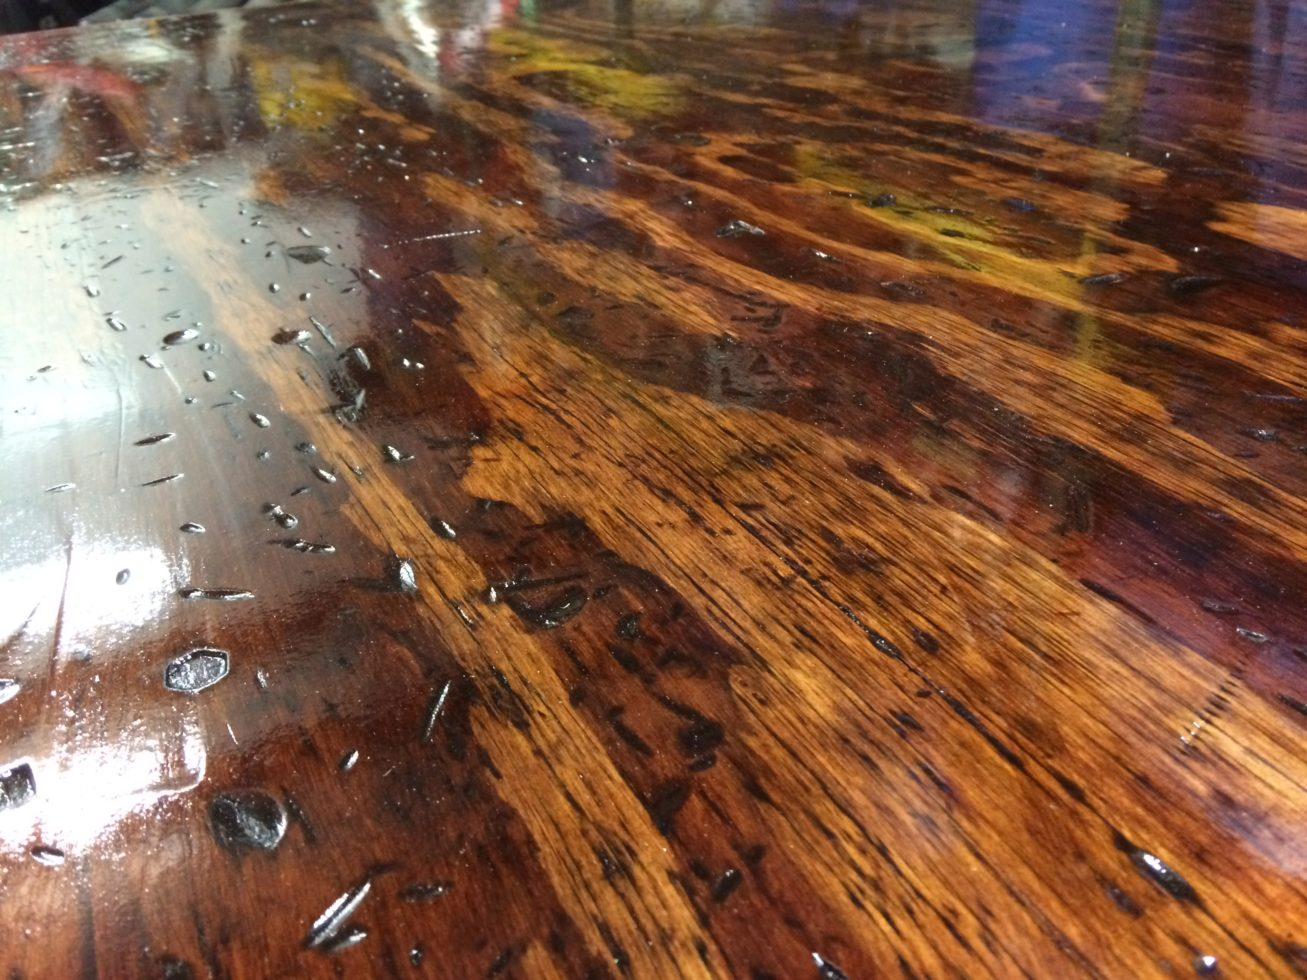 shiny rustic wood surface